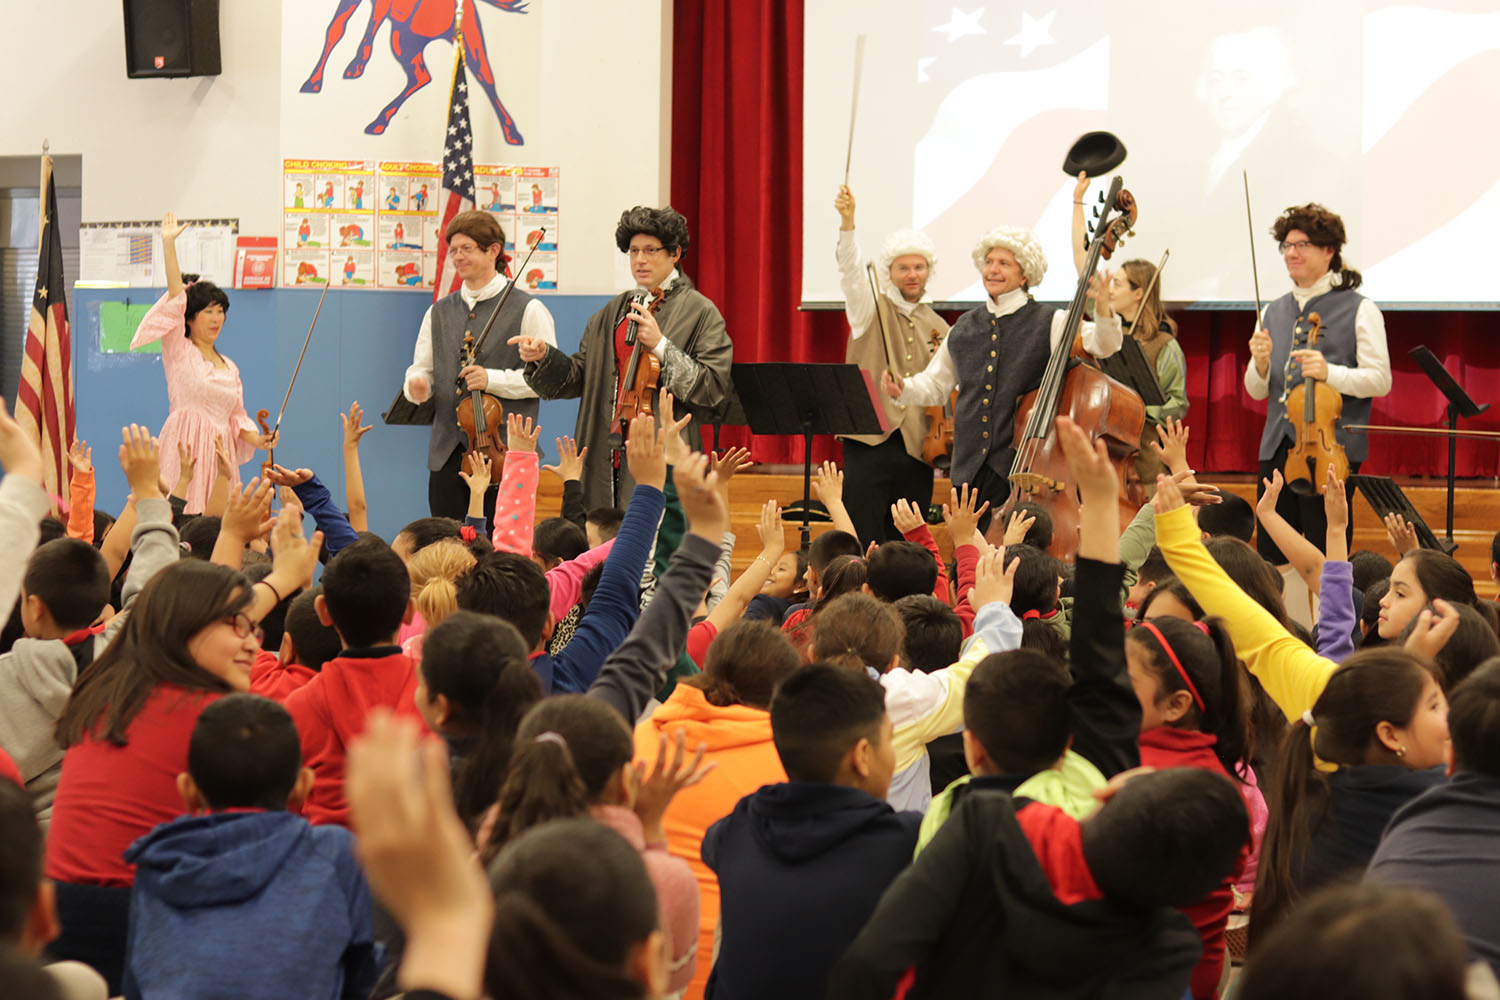 Mercury performs What's on Ben Franklin's iPod at Raul C Martinez Elementary sm.jpg